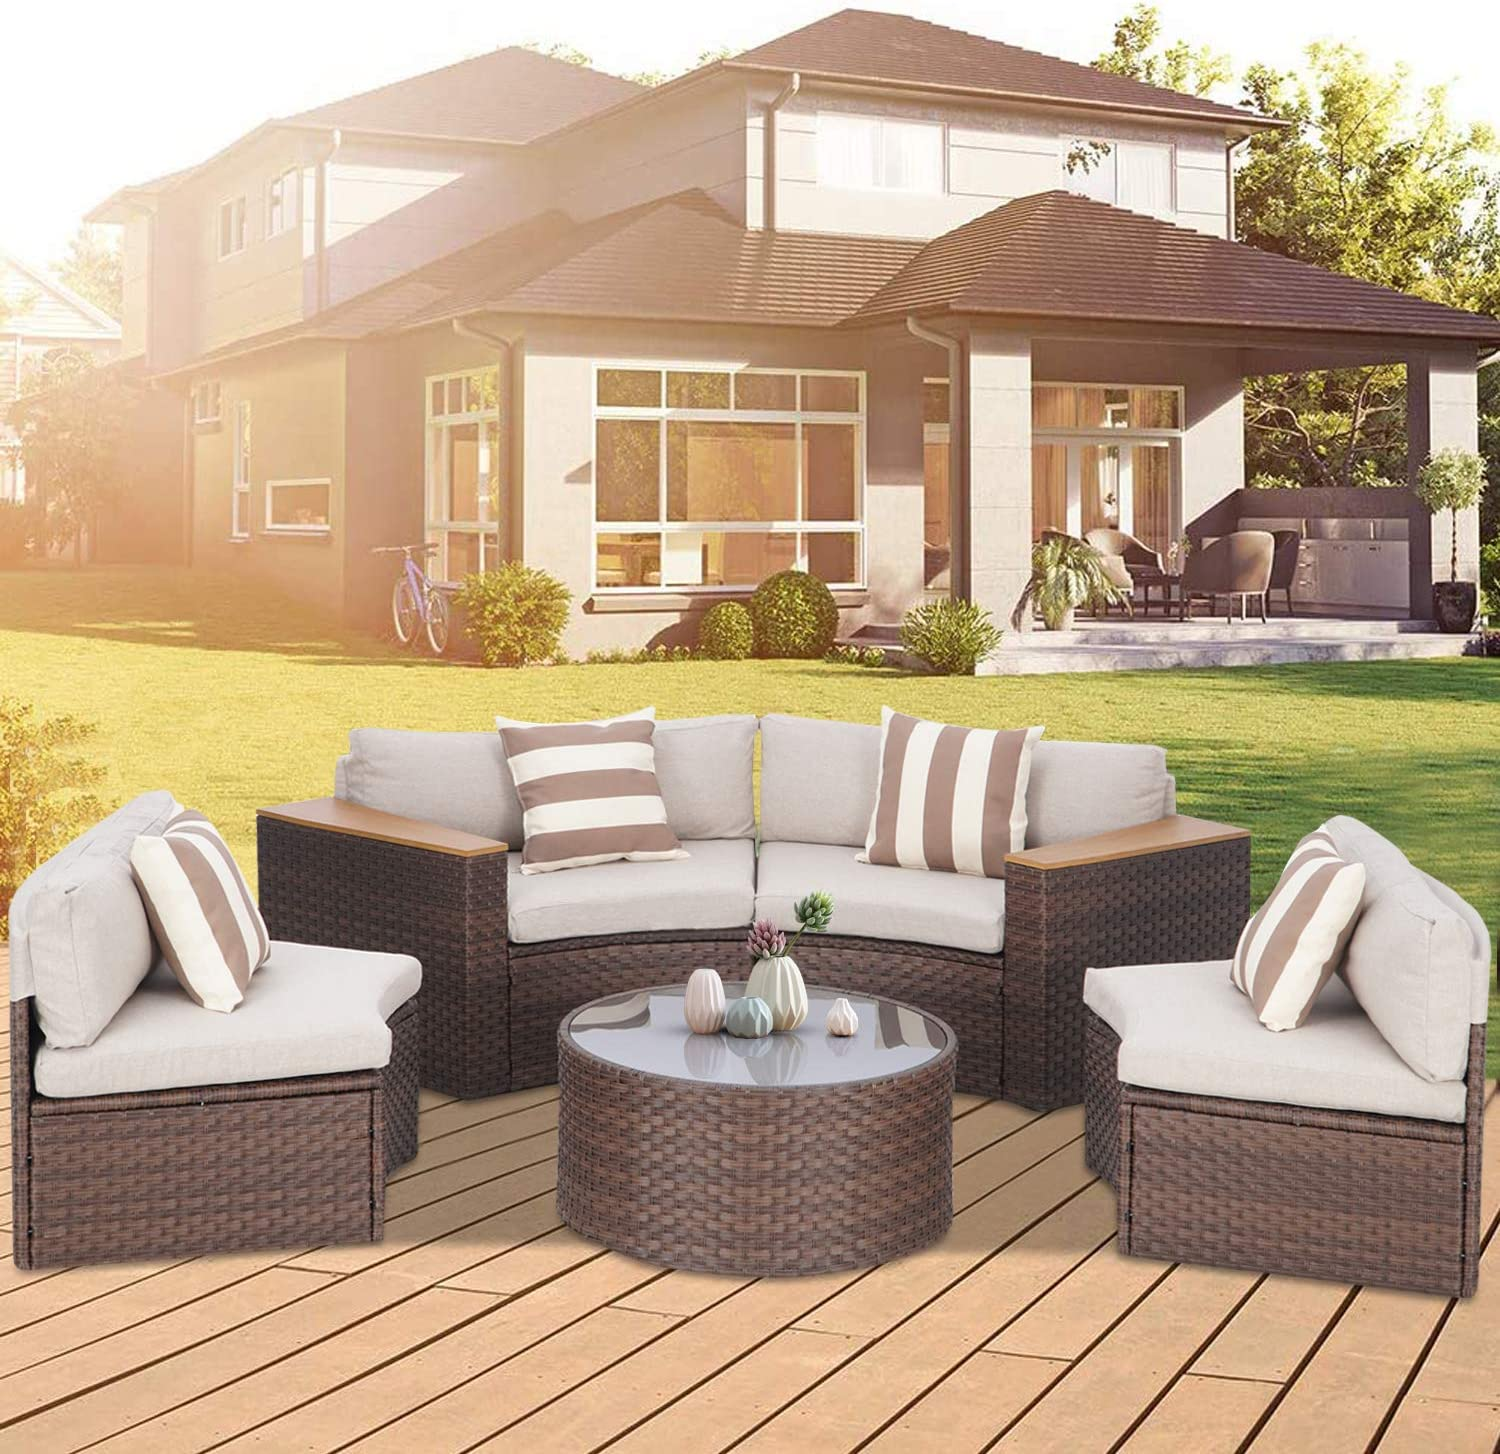 Crownland 5 Pieces Outdoor Patio Sectional Furniture Set, All-Weather Brown Wicker Half-Moon Sofa with Tempered Glass Round Table and Thick Cushions,Suitable for Backyards and Pools (Brown)